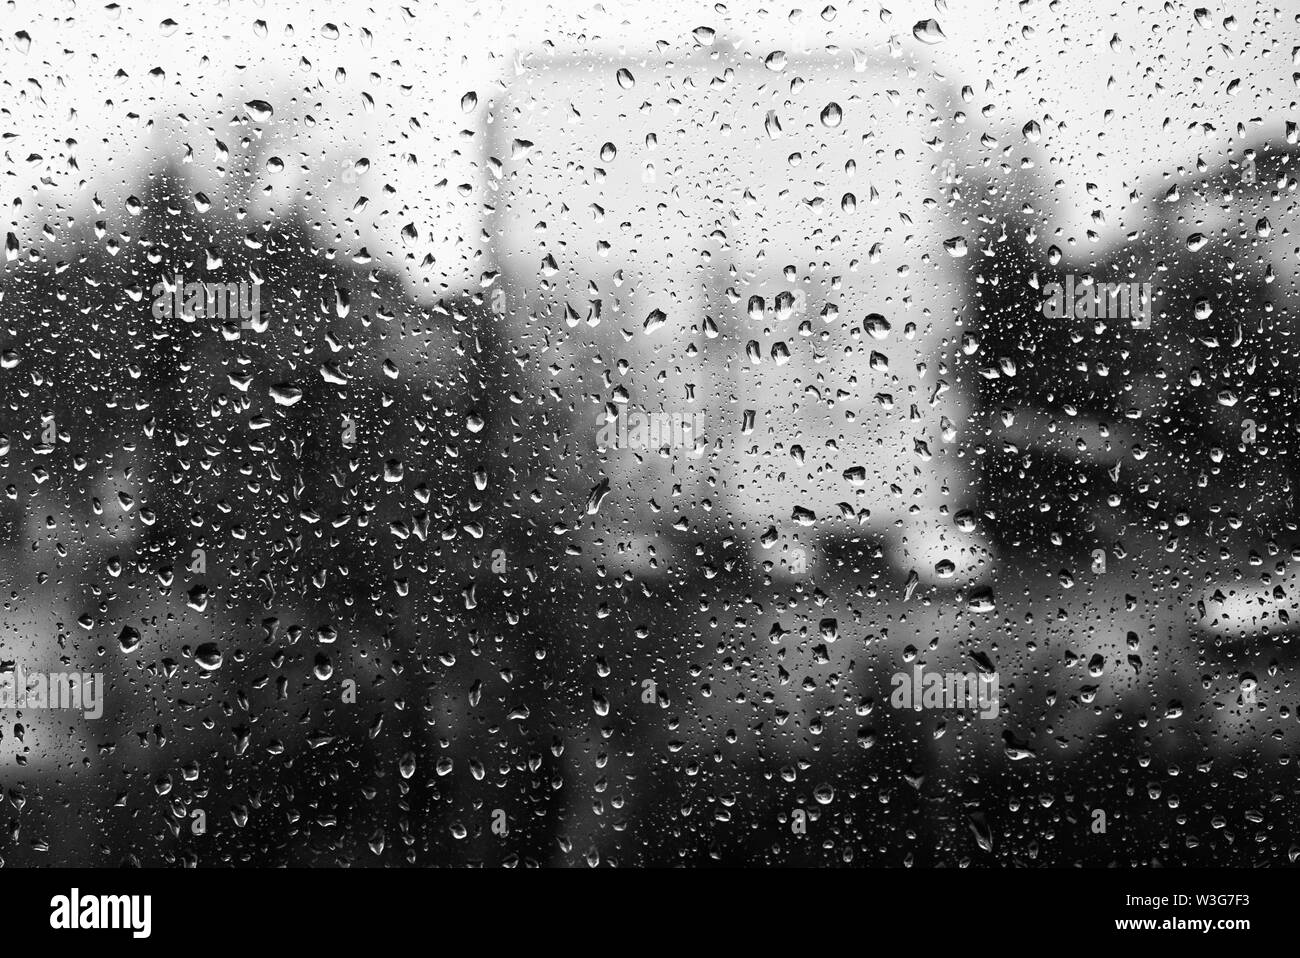 Black and white photo of droplets on the glass. Behind the glass building silhouette - Stock Image